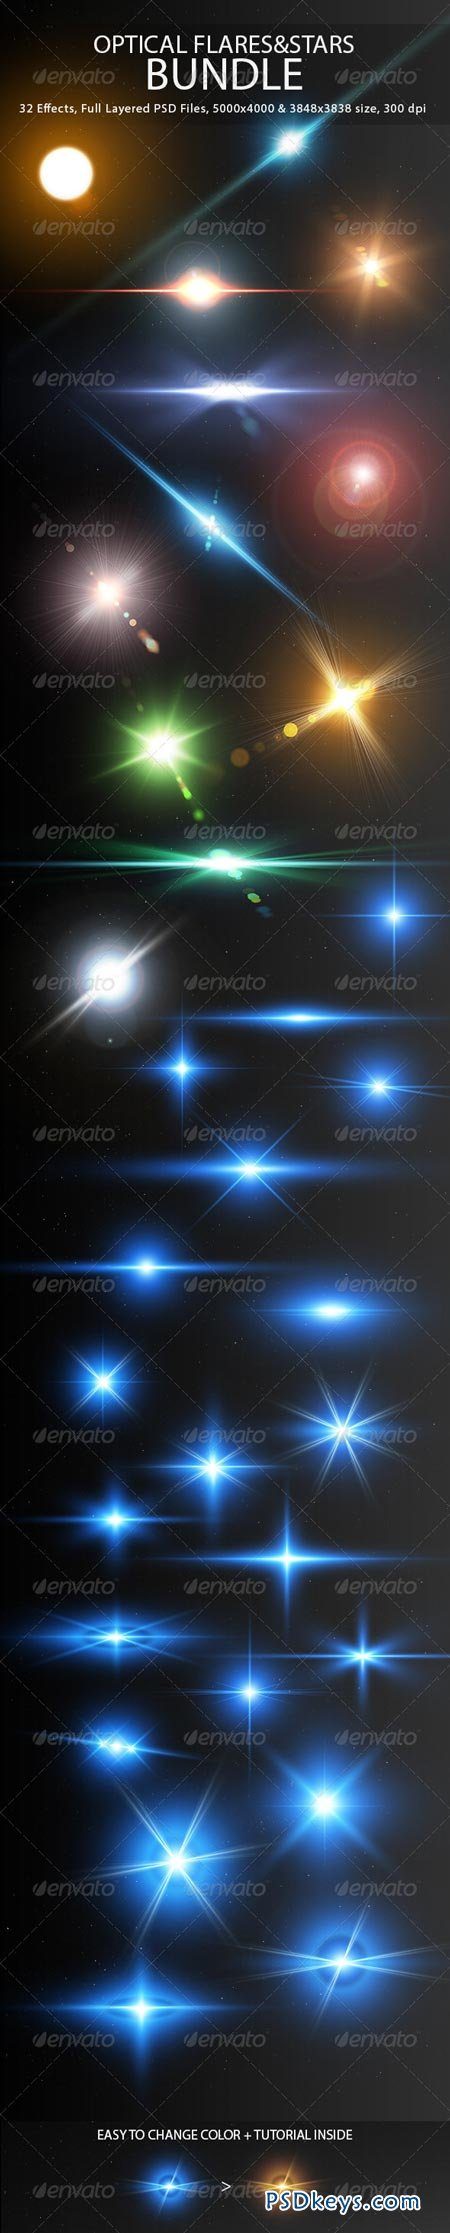 Optical Flares&Stars Bundle 7602672